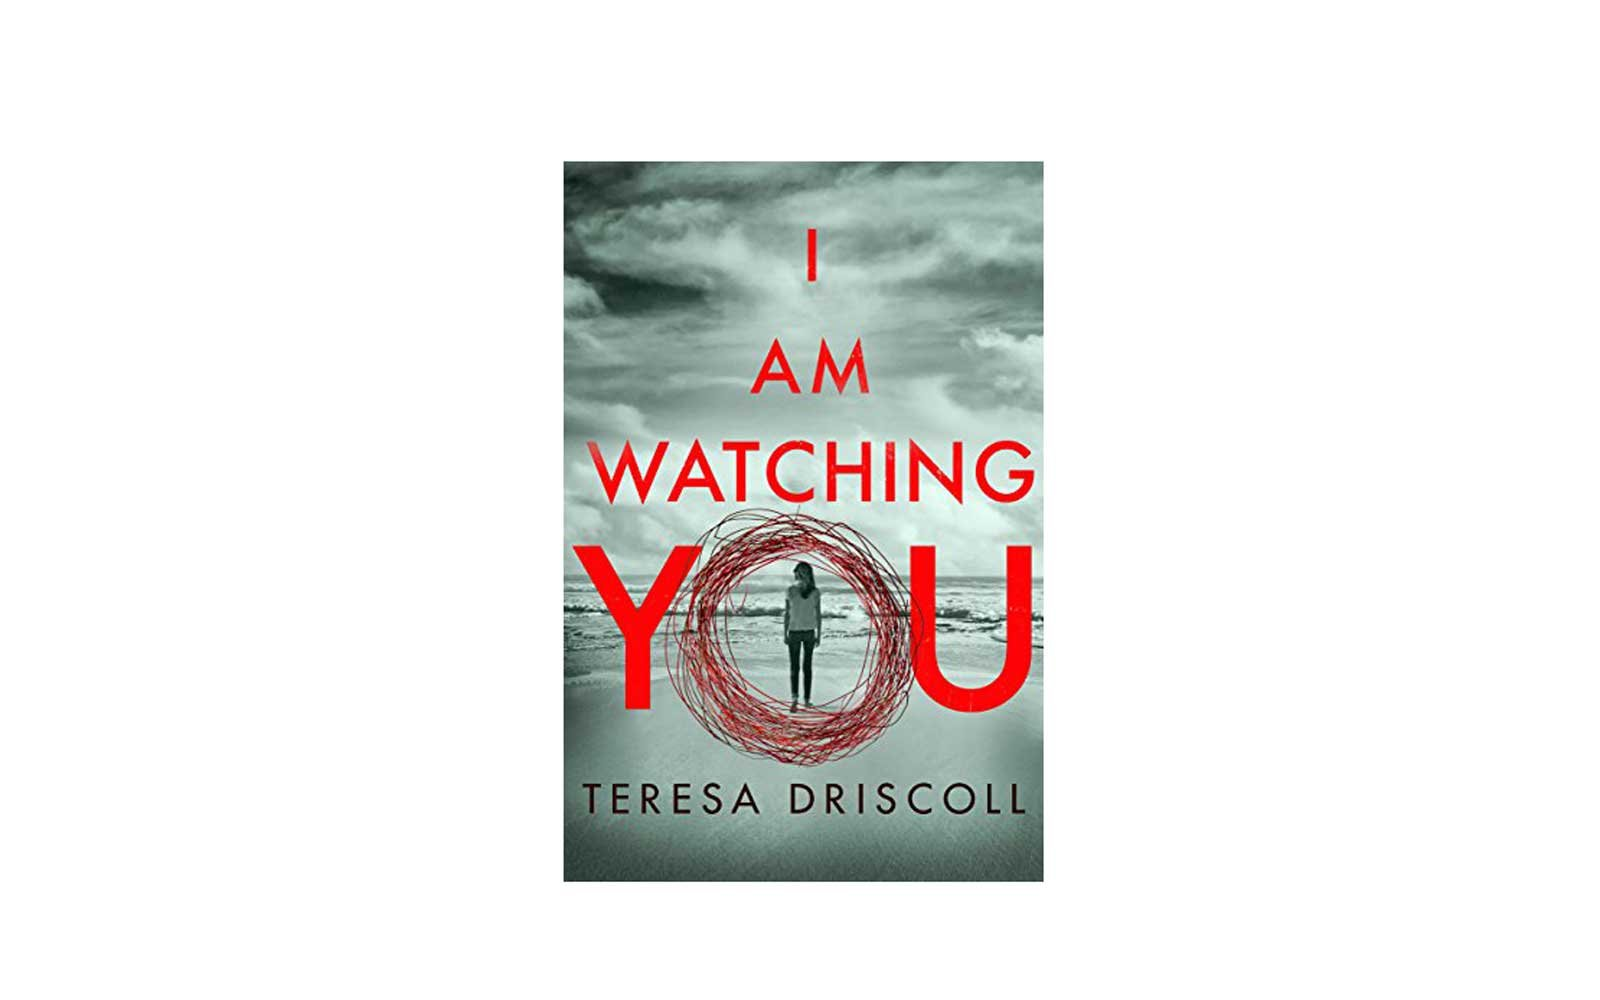 20 most popular Kindle books 2017 I am Watching You